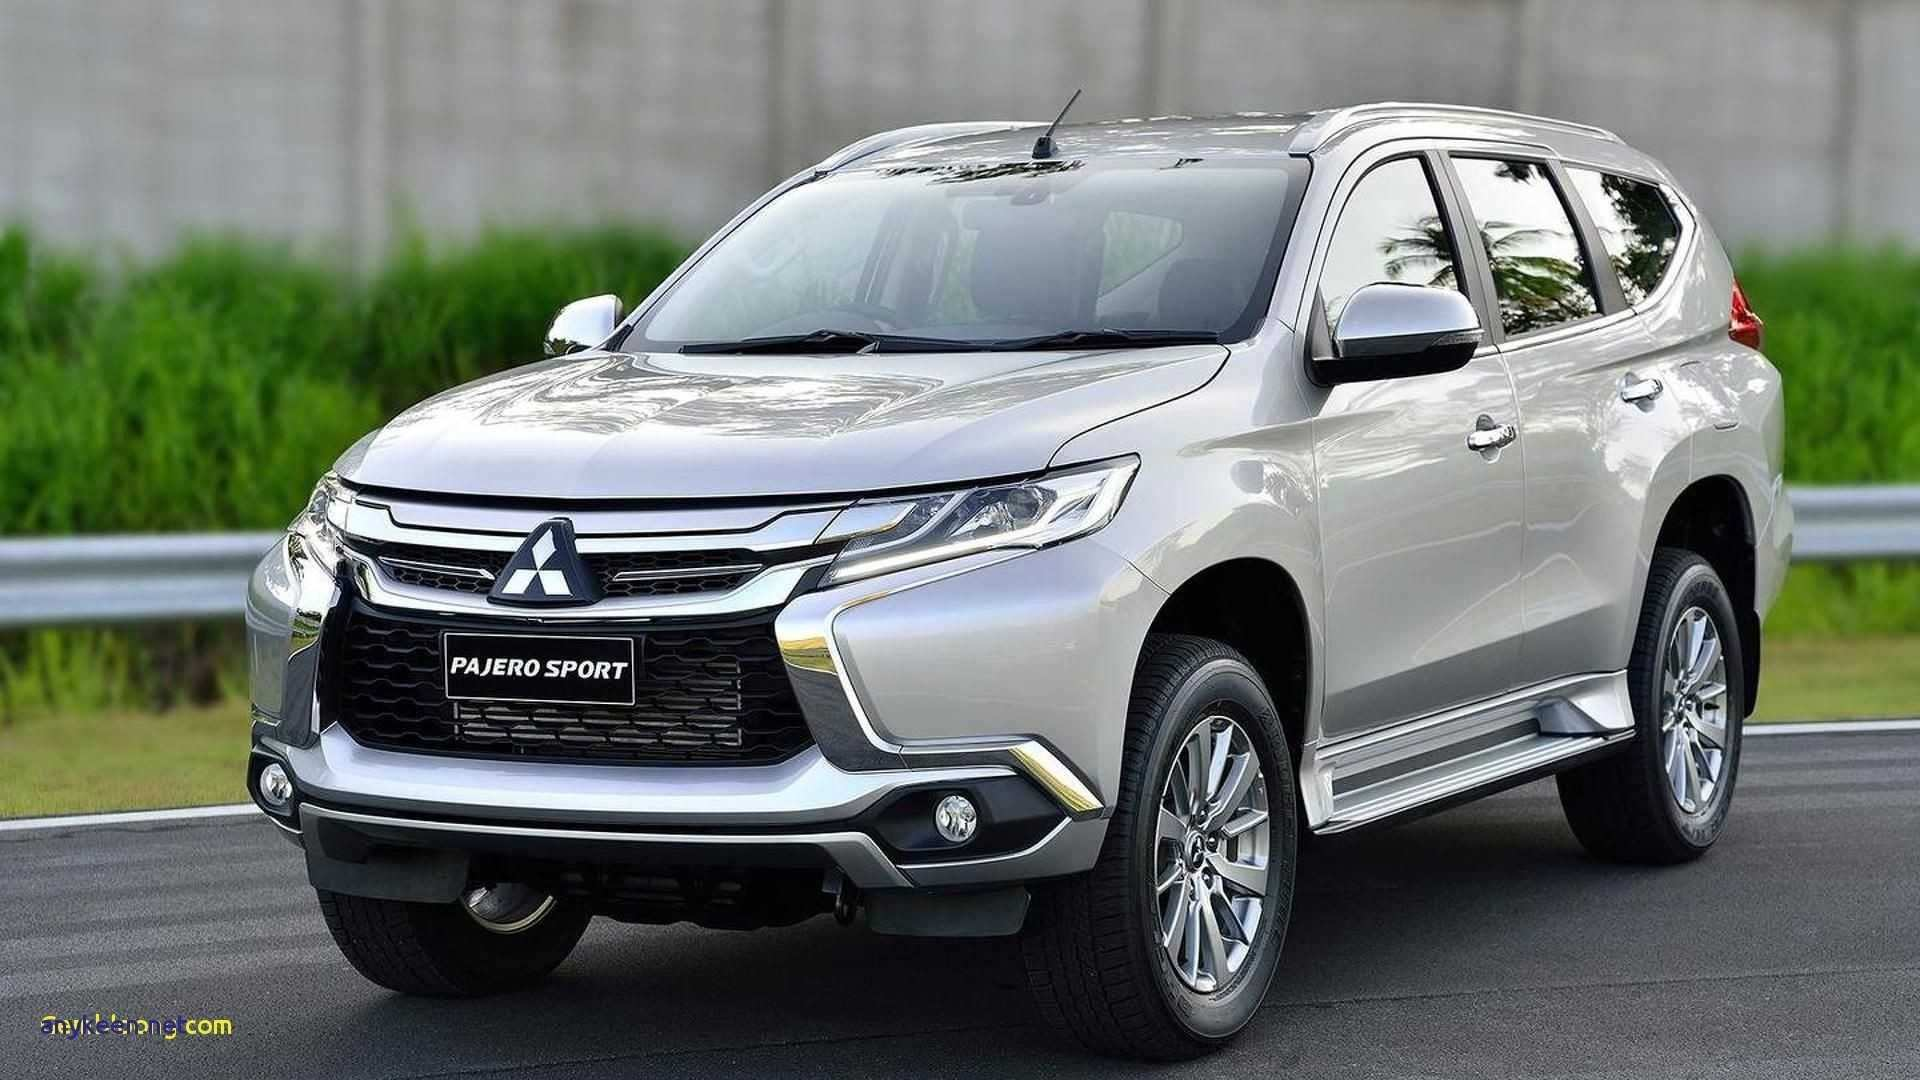 59 All New 2020 Mitsubishi Montero Sport Philippines Release Date